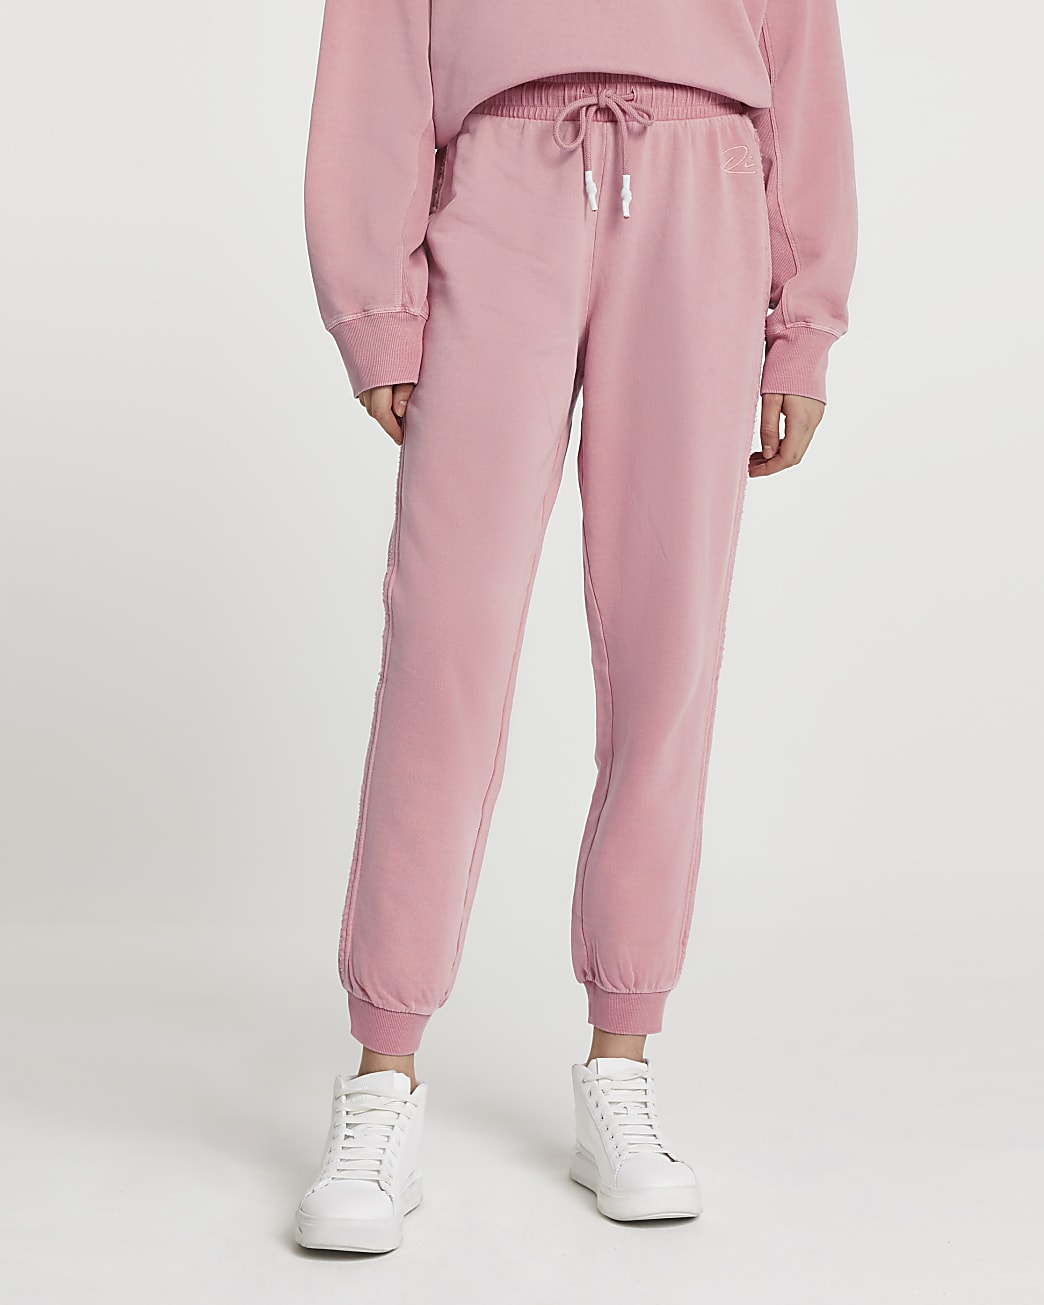 Pink ankle cuff joggers